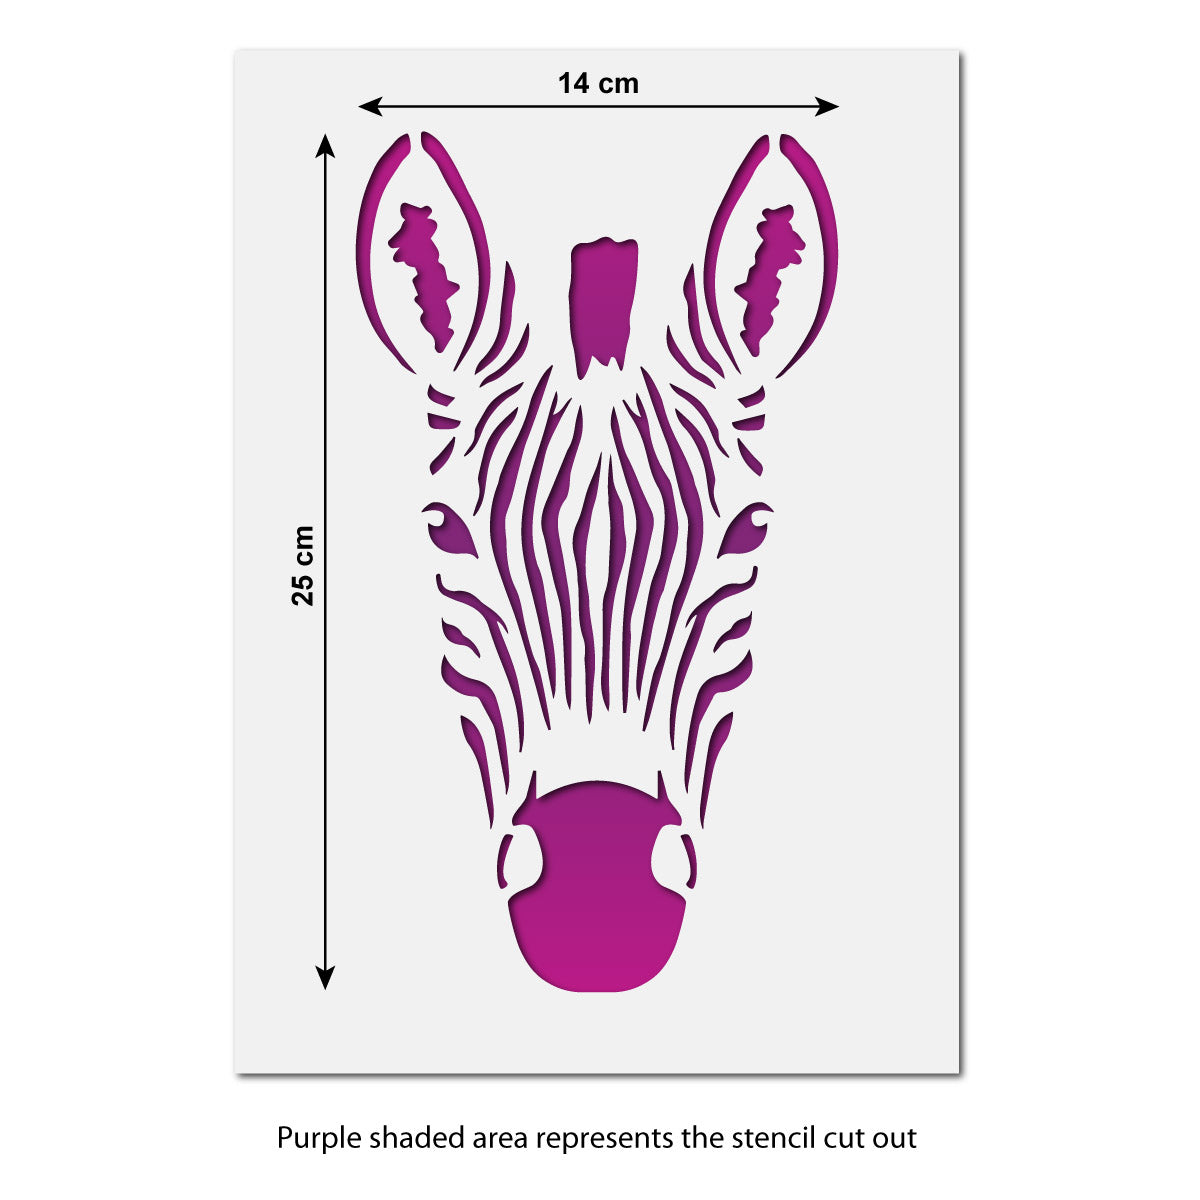 CraftStar Zebra Head Stencil - Size Guide